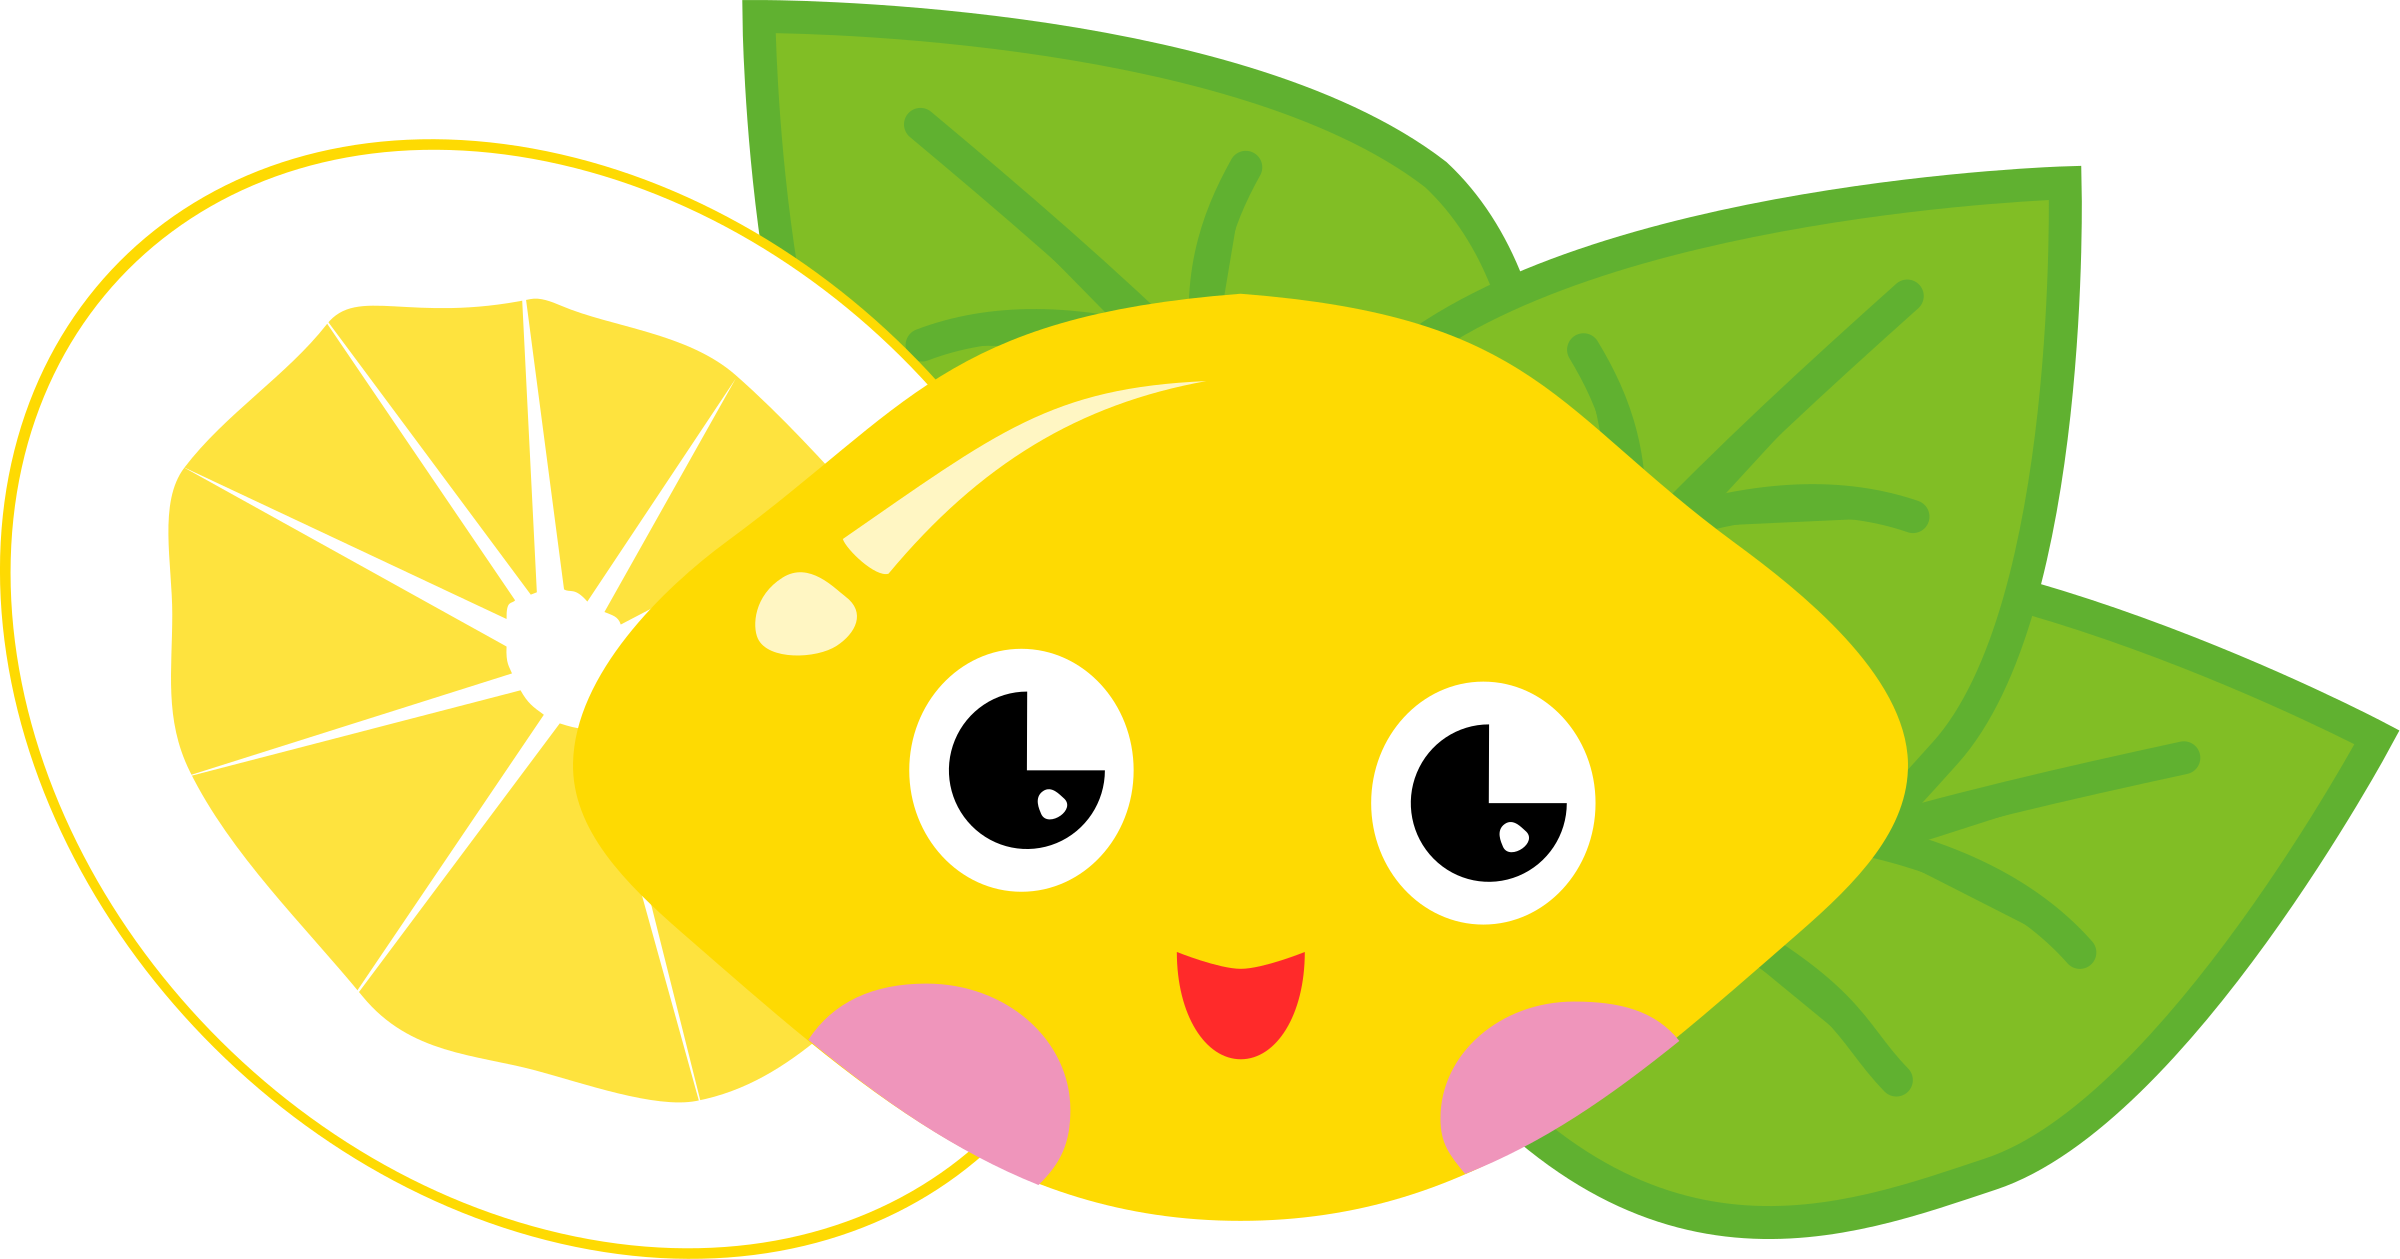 Einstein clipart animated. Cartoon lemons group lemon